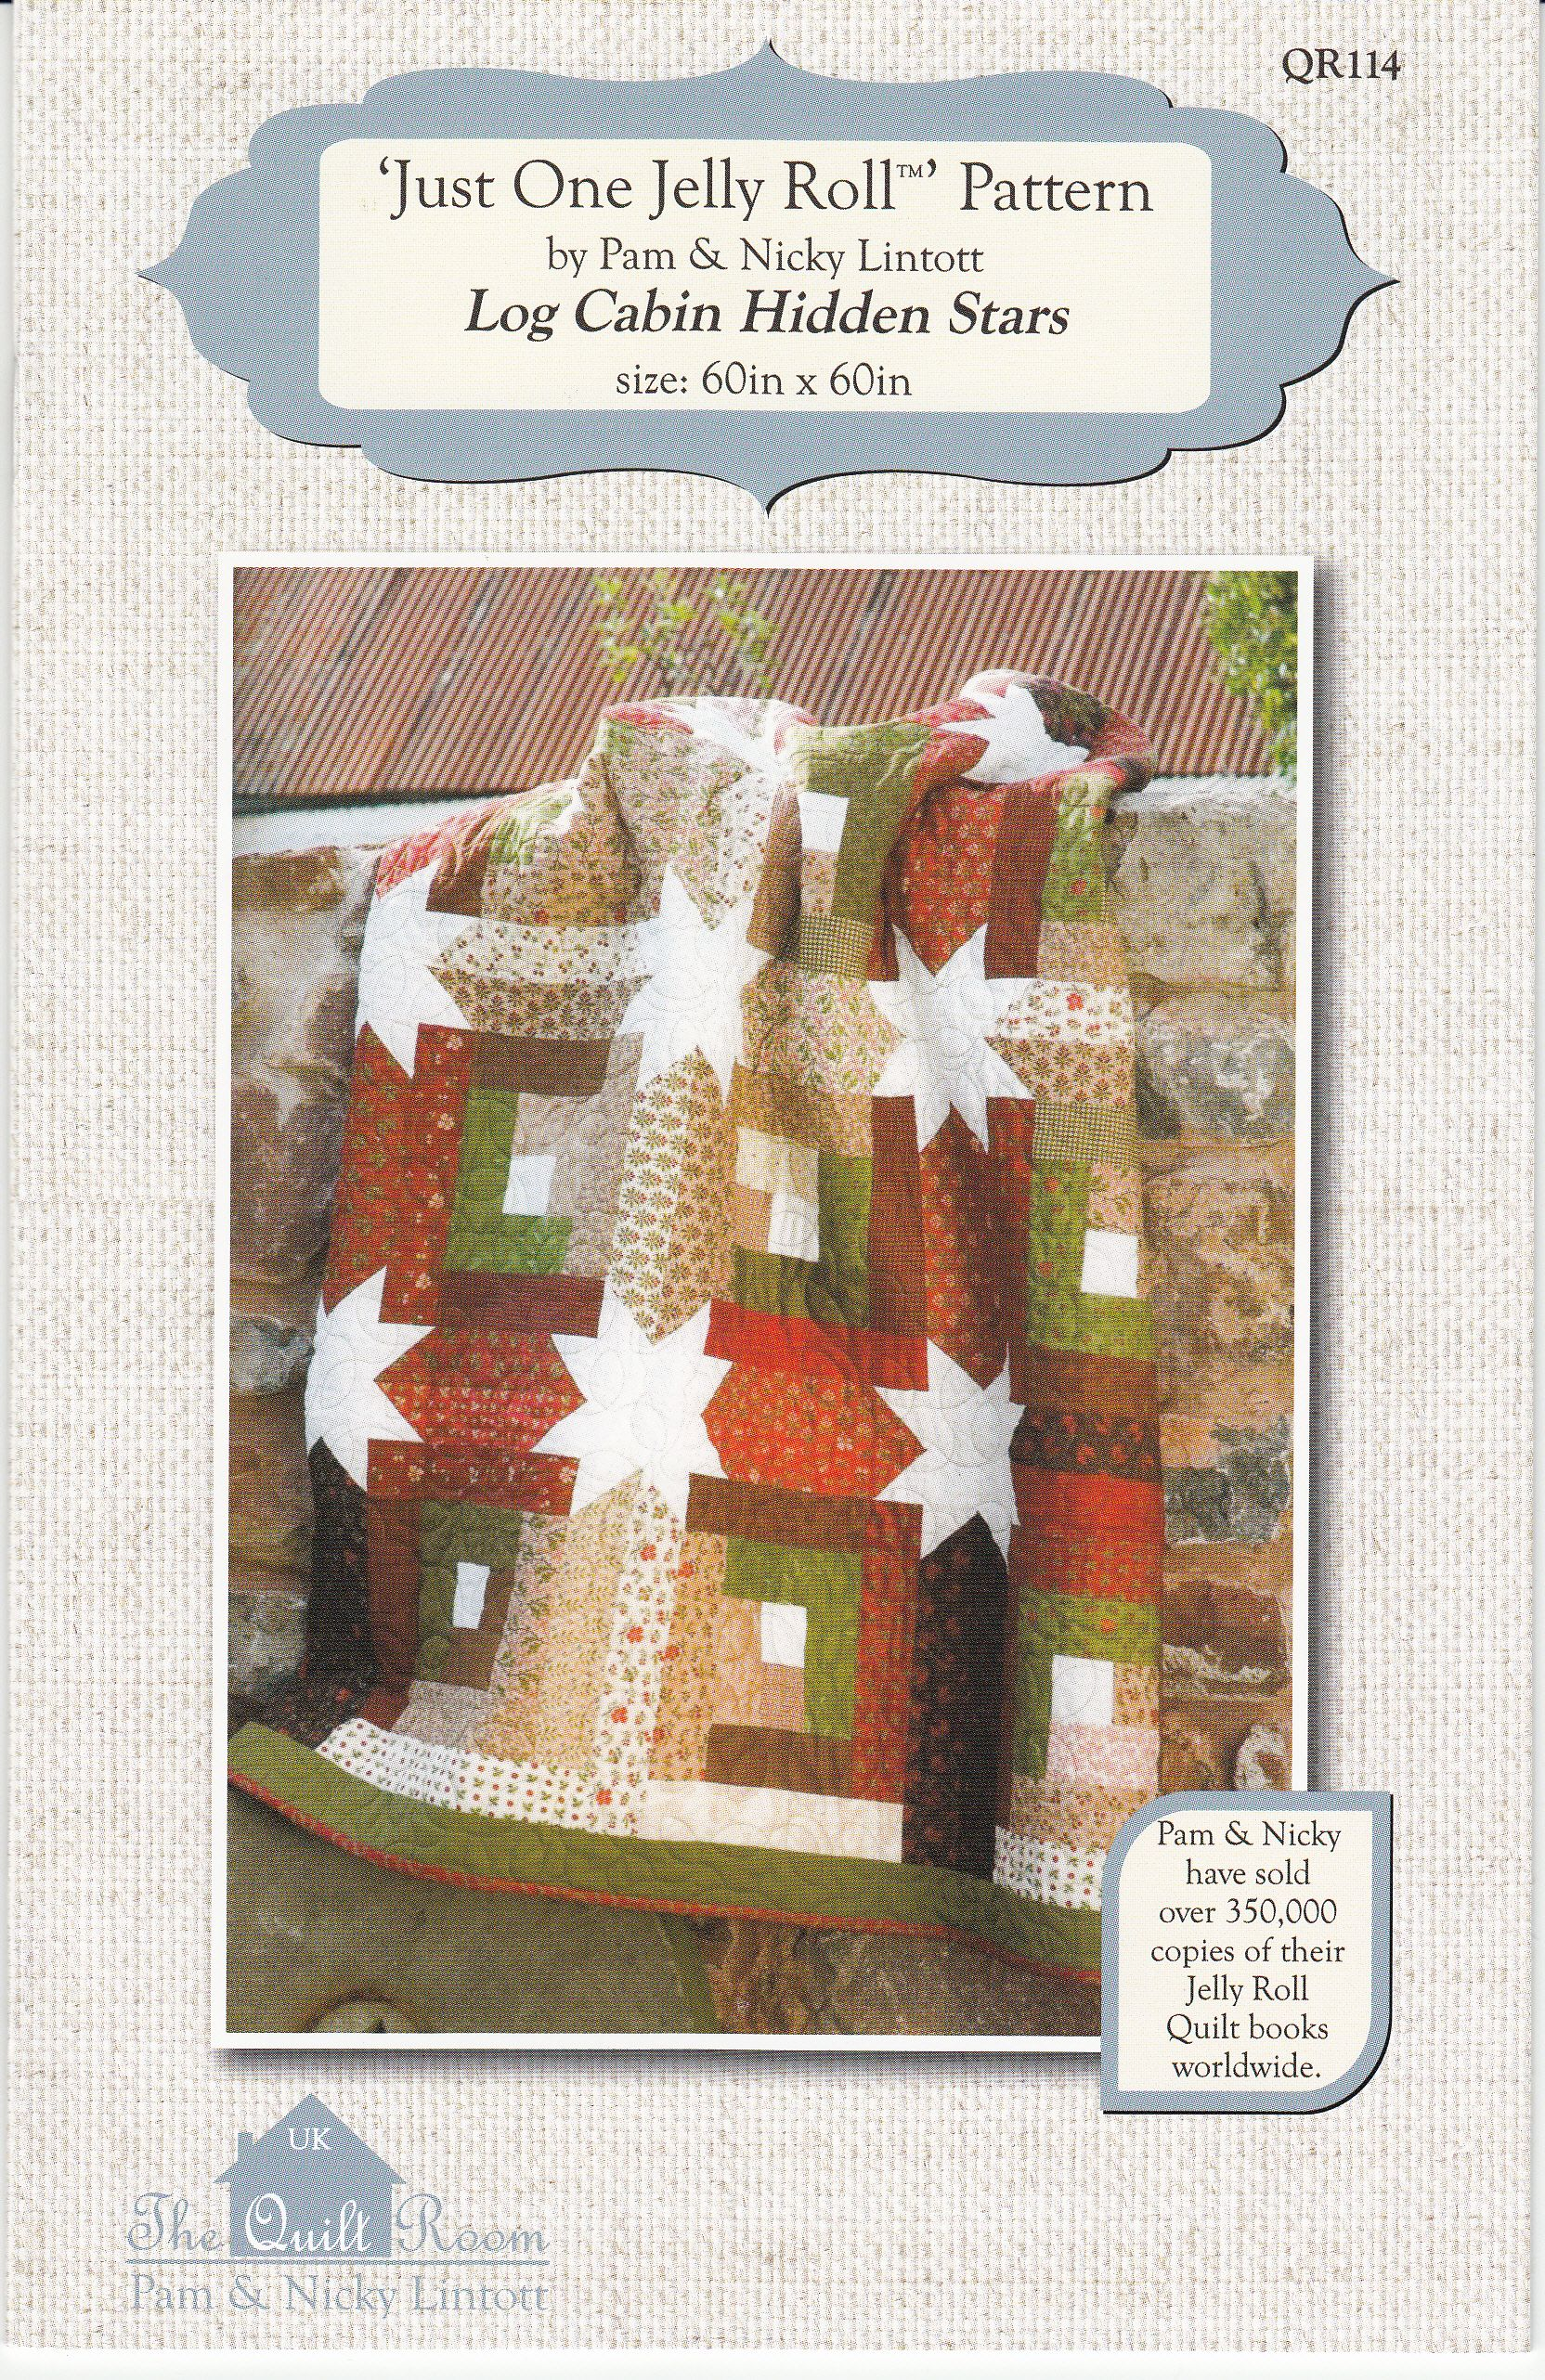 Log Cabin Hidden Stars Just One Jelly Roll By Lintott Pam